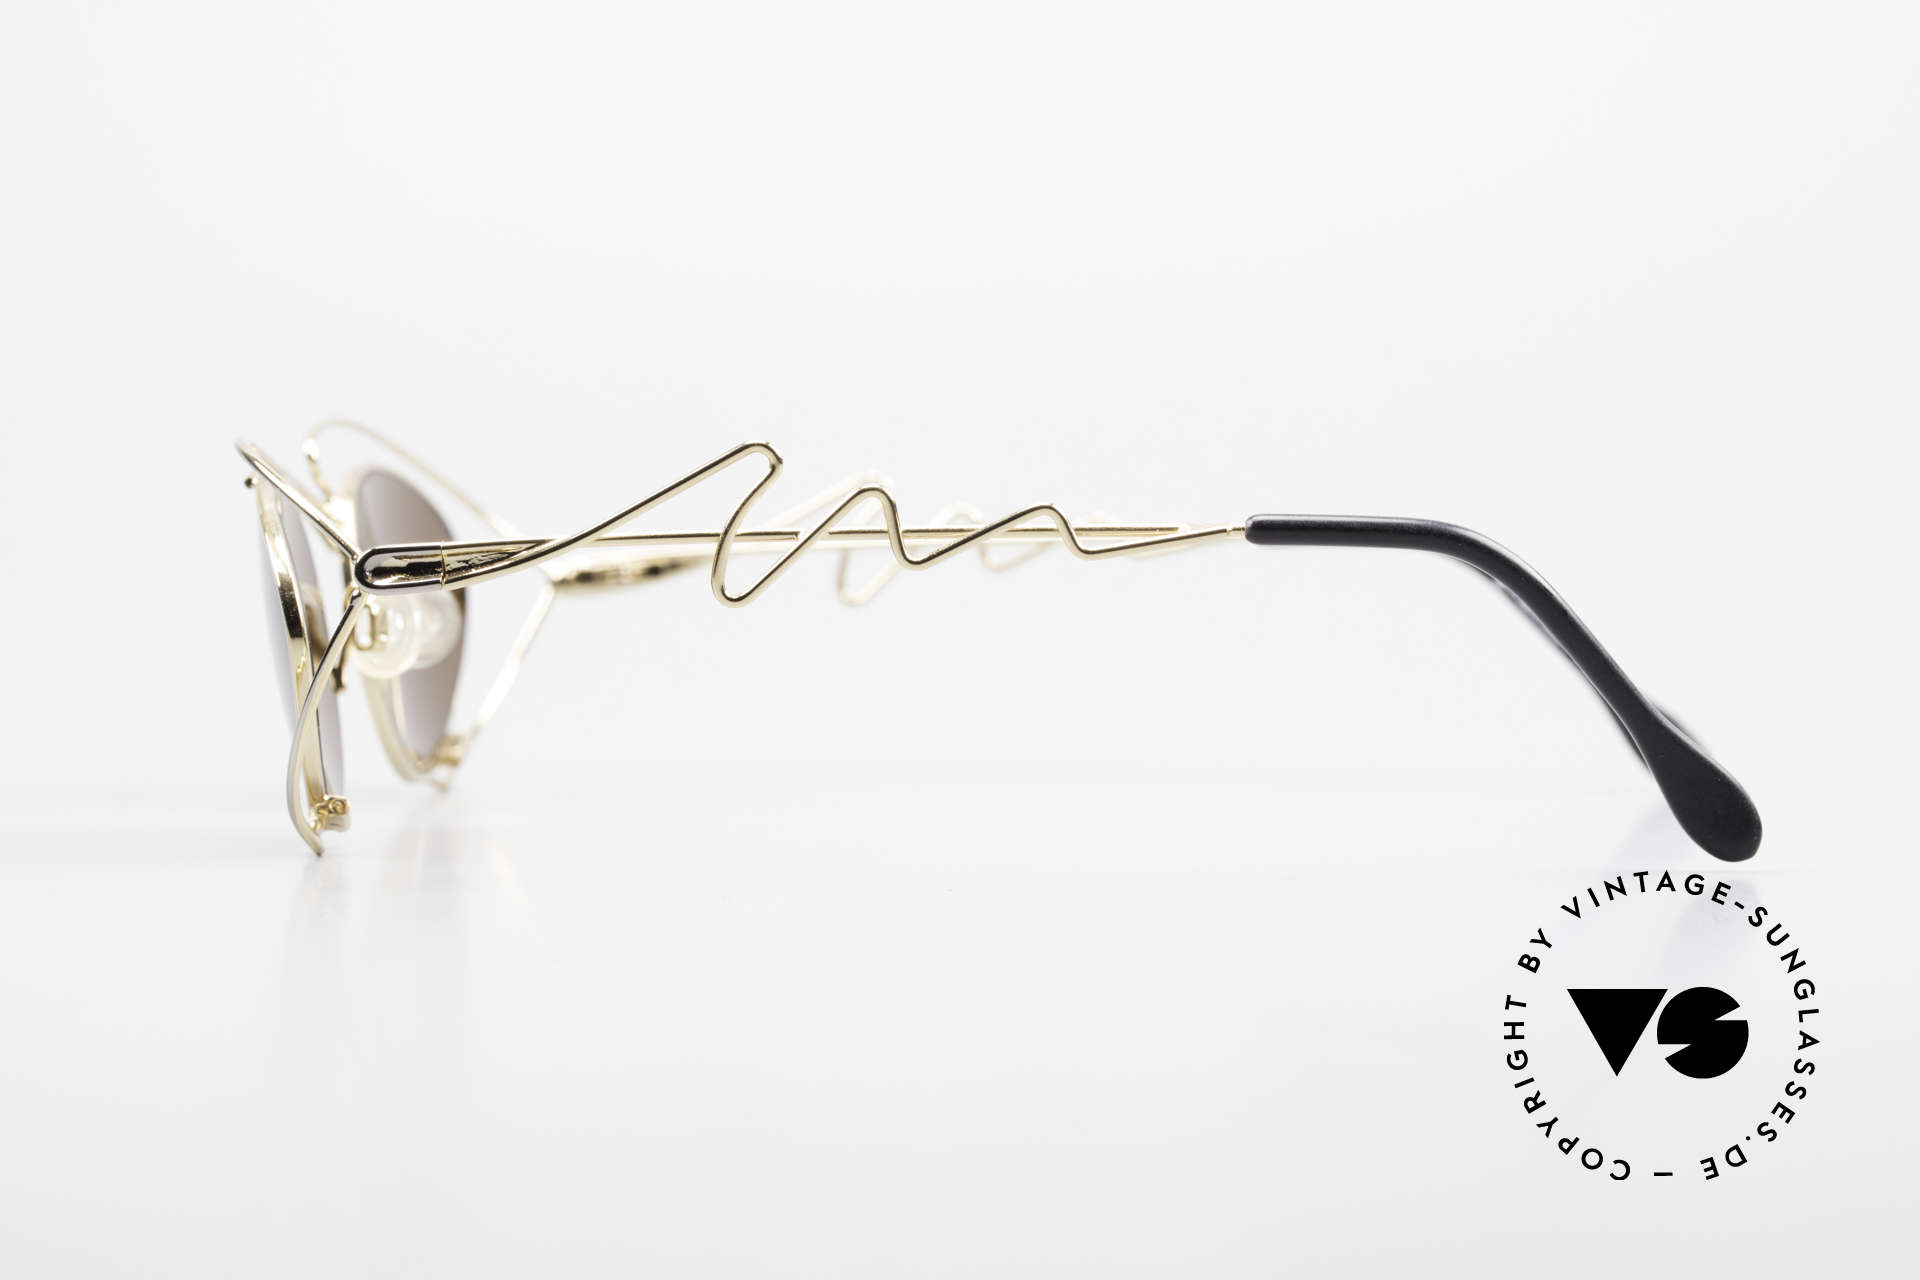 Neostyle Holiday 973 Crazy 90's Ladies Sunglasses, NO retro sunglasses, but a 30 years old original, Made for Women